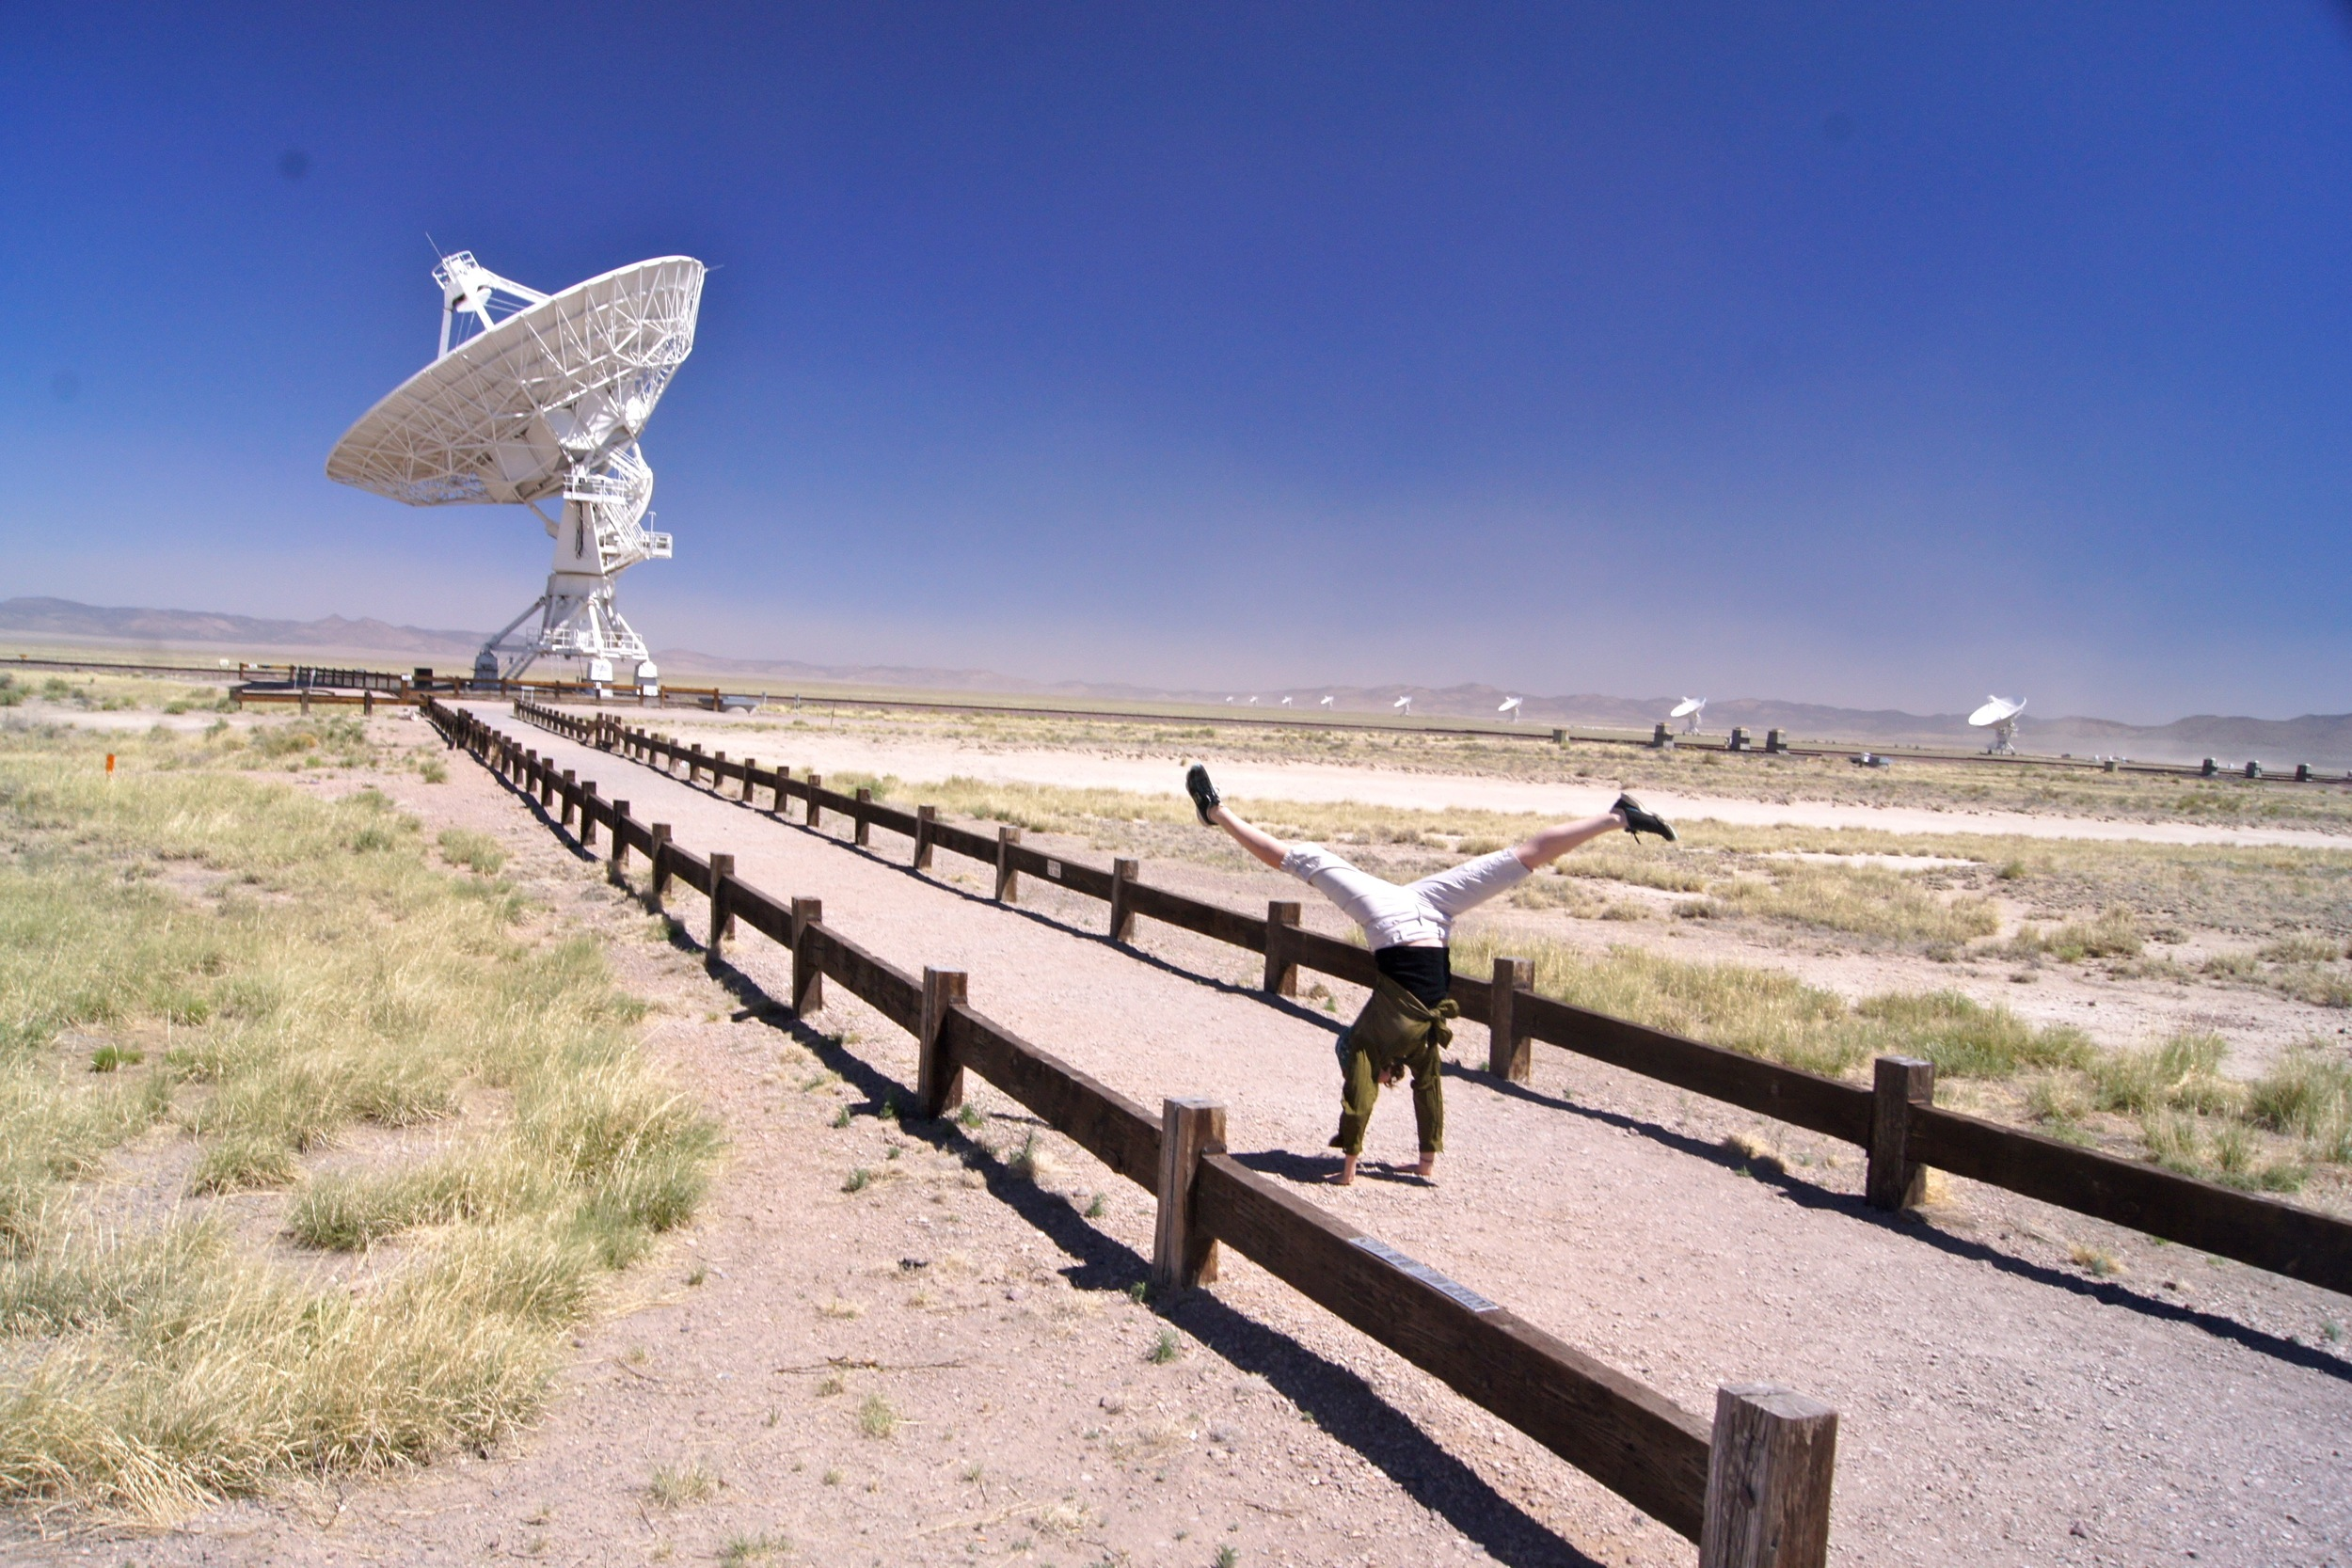 A Very Large Array, New Mexico